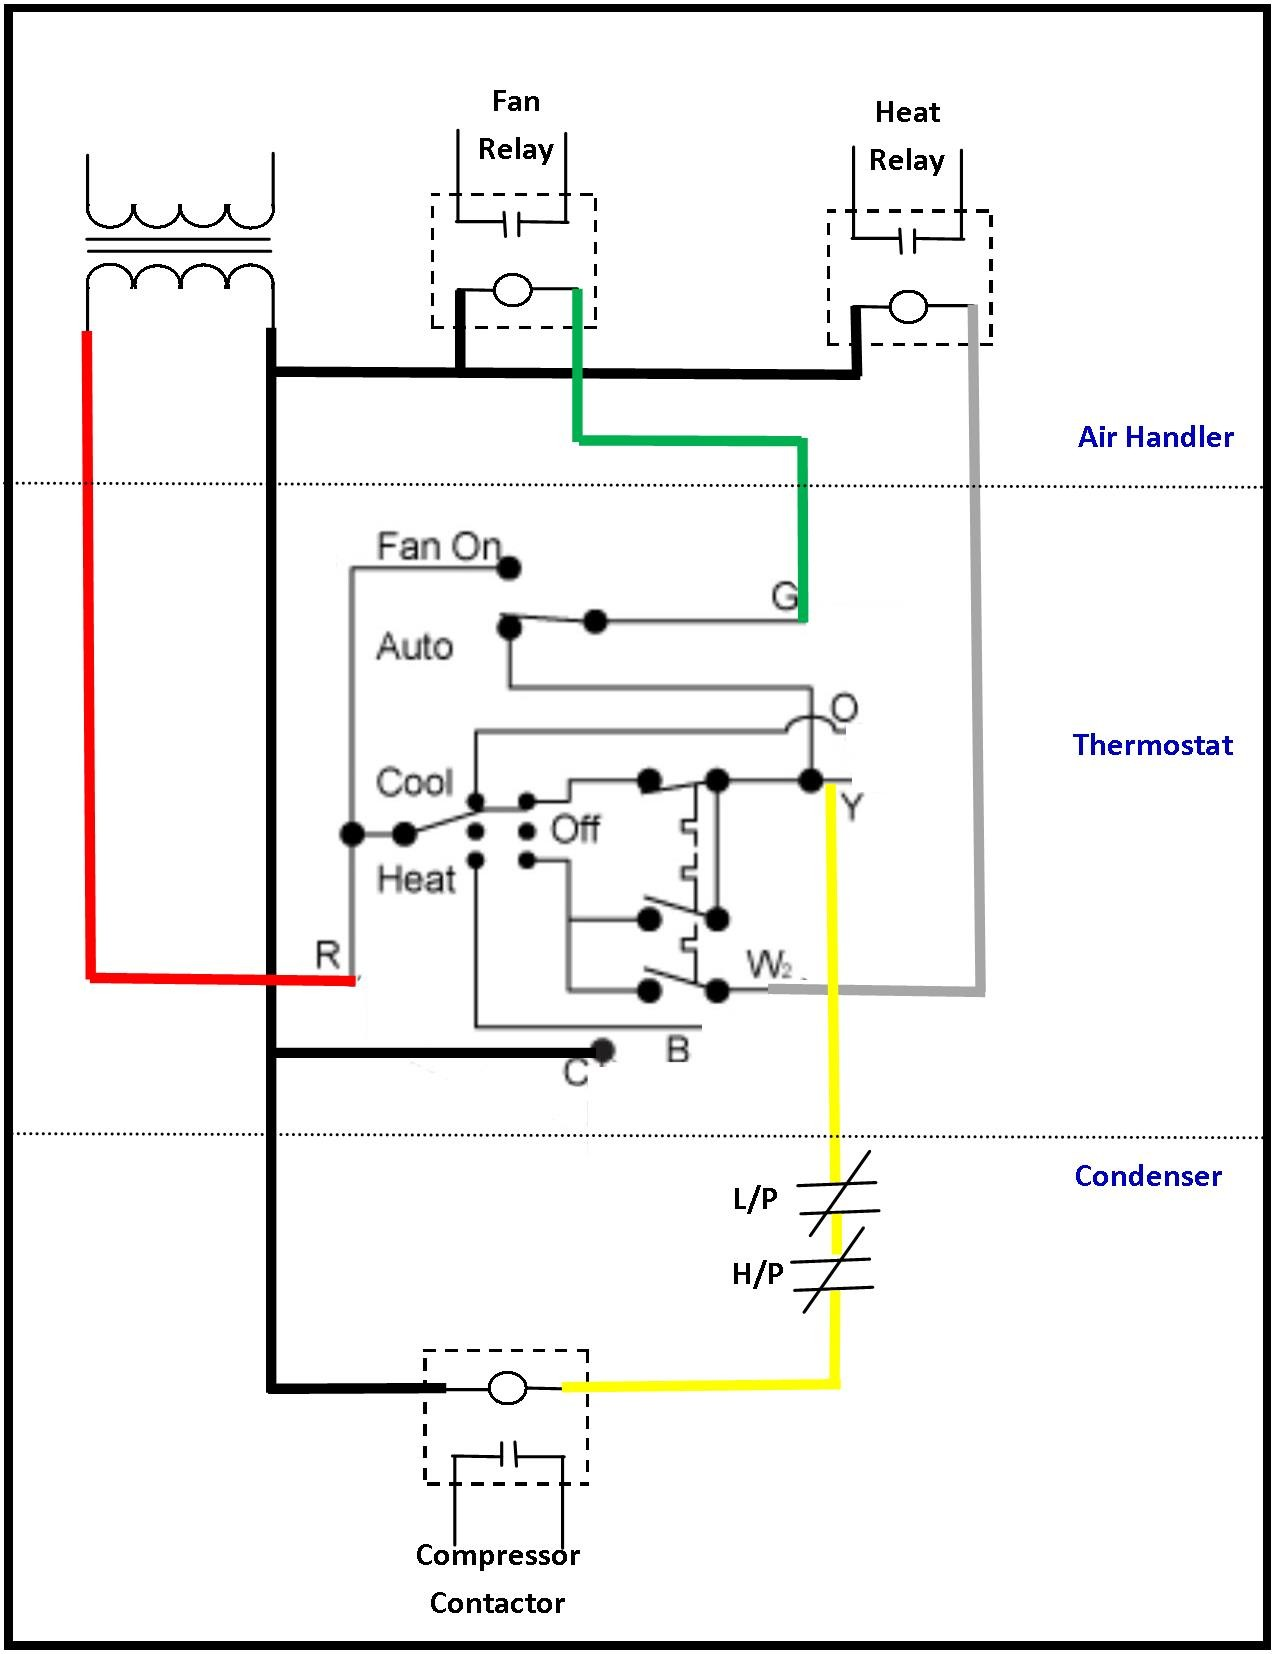 Air Conditioner Wiring Diagram Wiring Diagram Besides Low Voltage Wiring Diagrams for Air Handler Of Air Conditioner Wiring Diagram